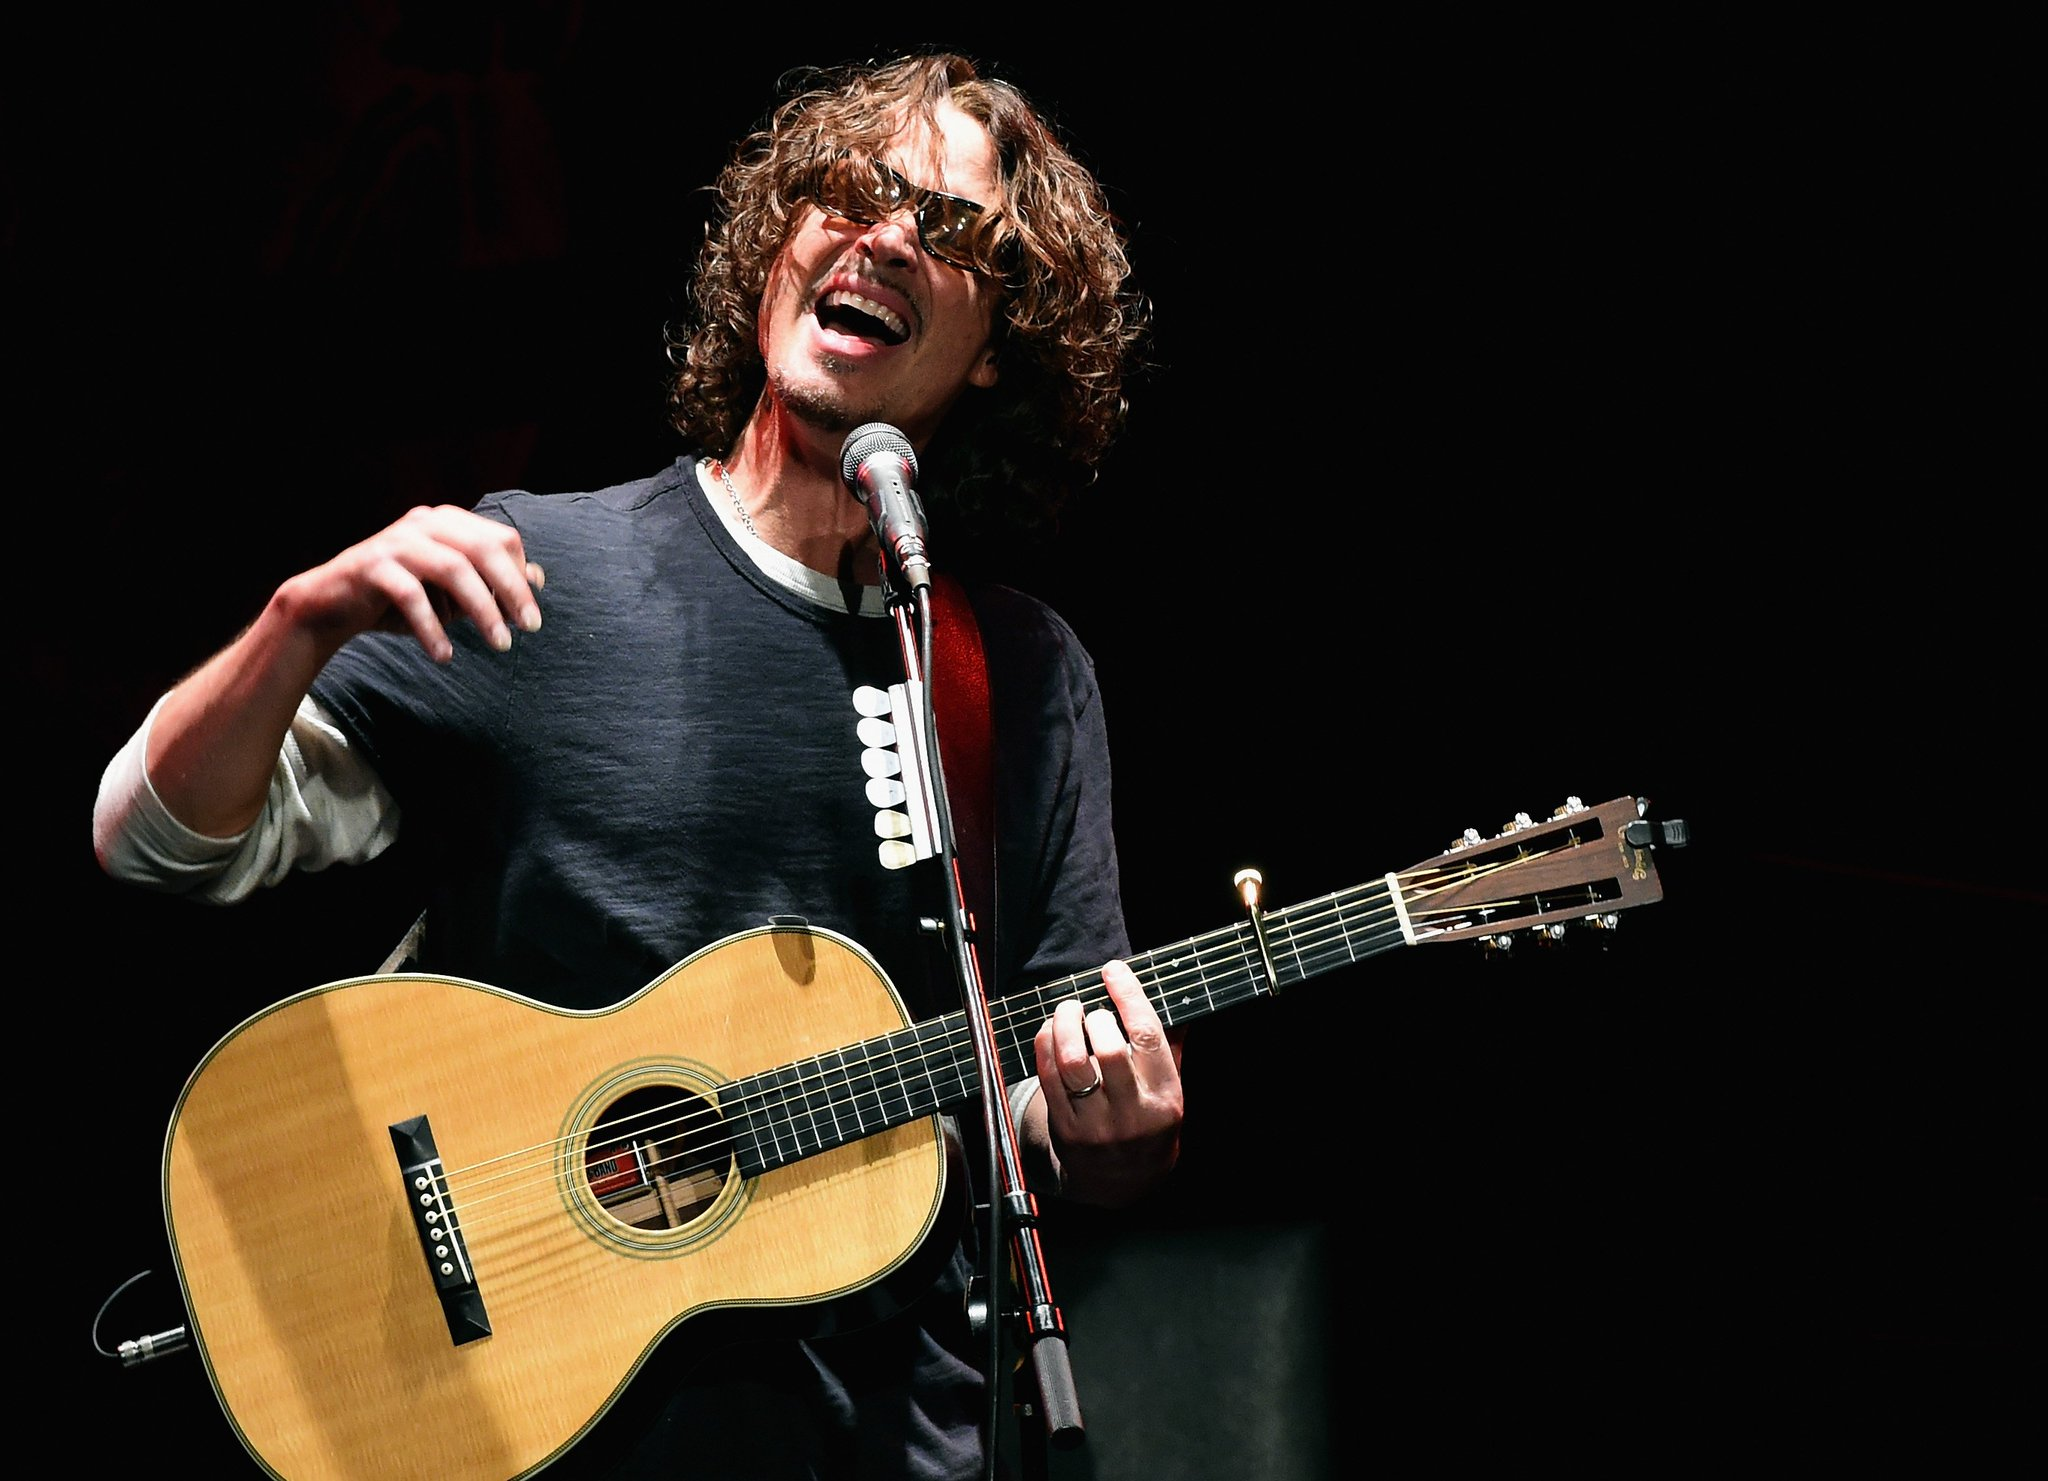 15 essential Chris Cornell songs https://t.co/JOAbbbohU4 https://t.co/krjRFtzPhE